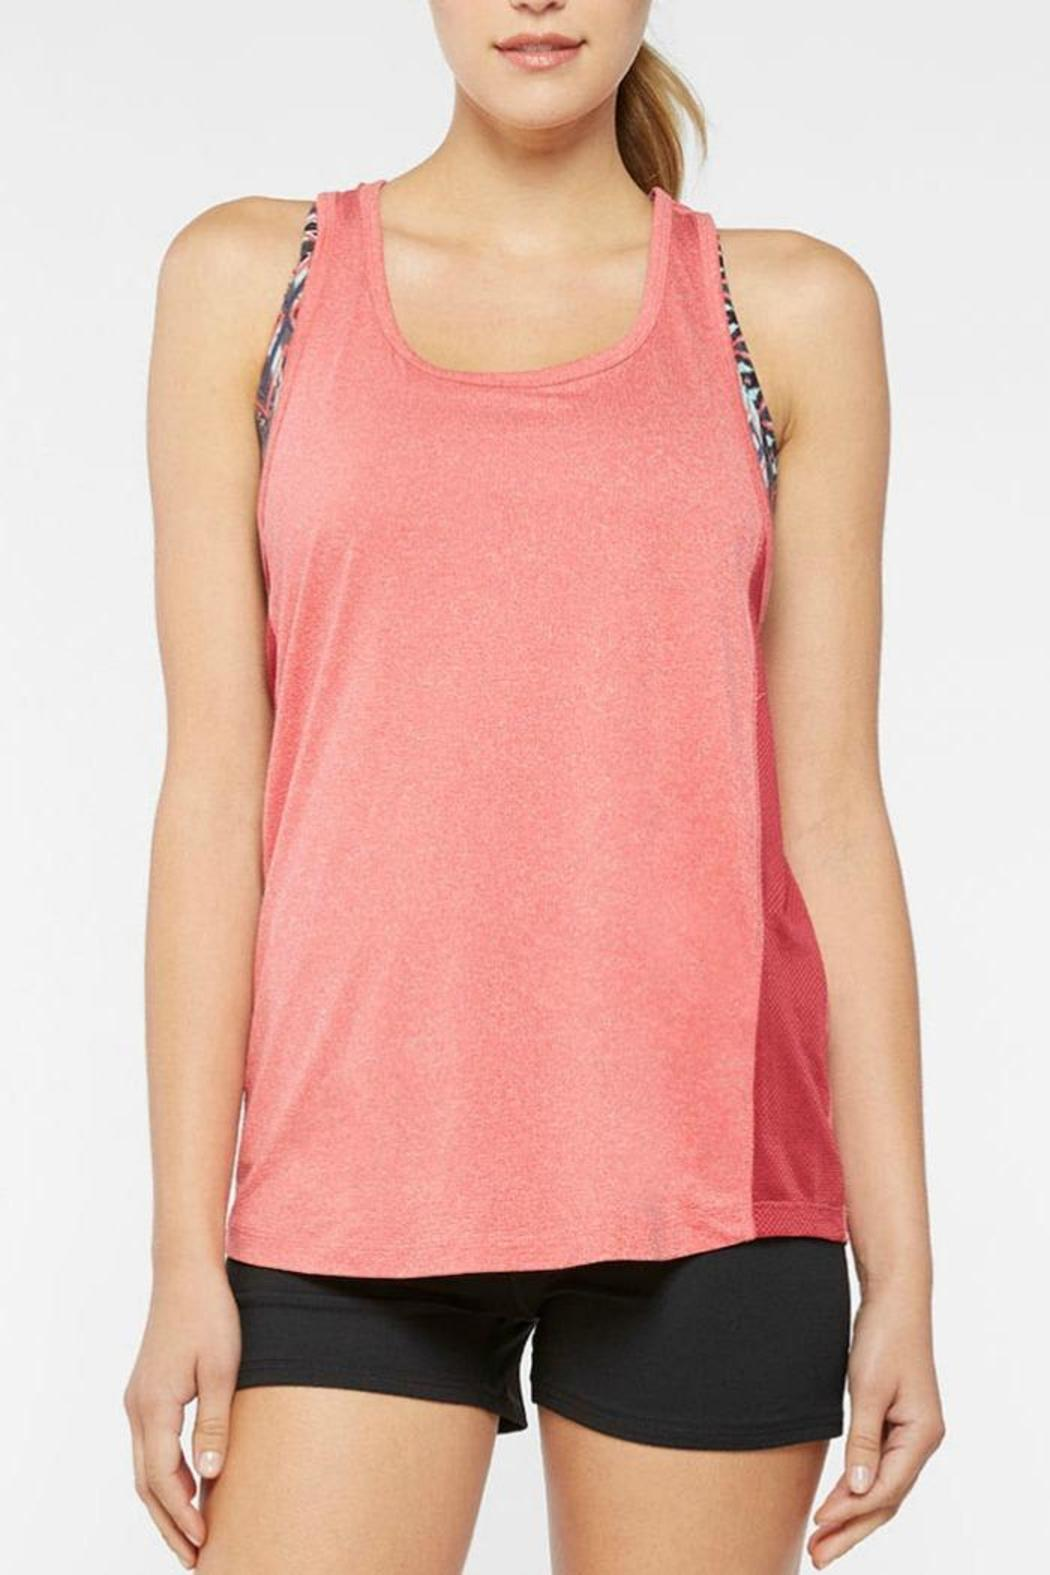 8bf235846603e Threads 4 Thought Kari Workout Tank from New Jersey by Charlotte s ...